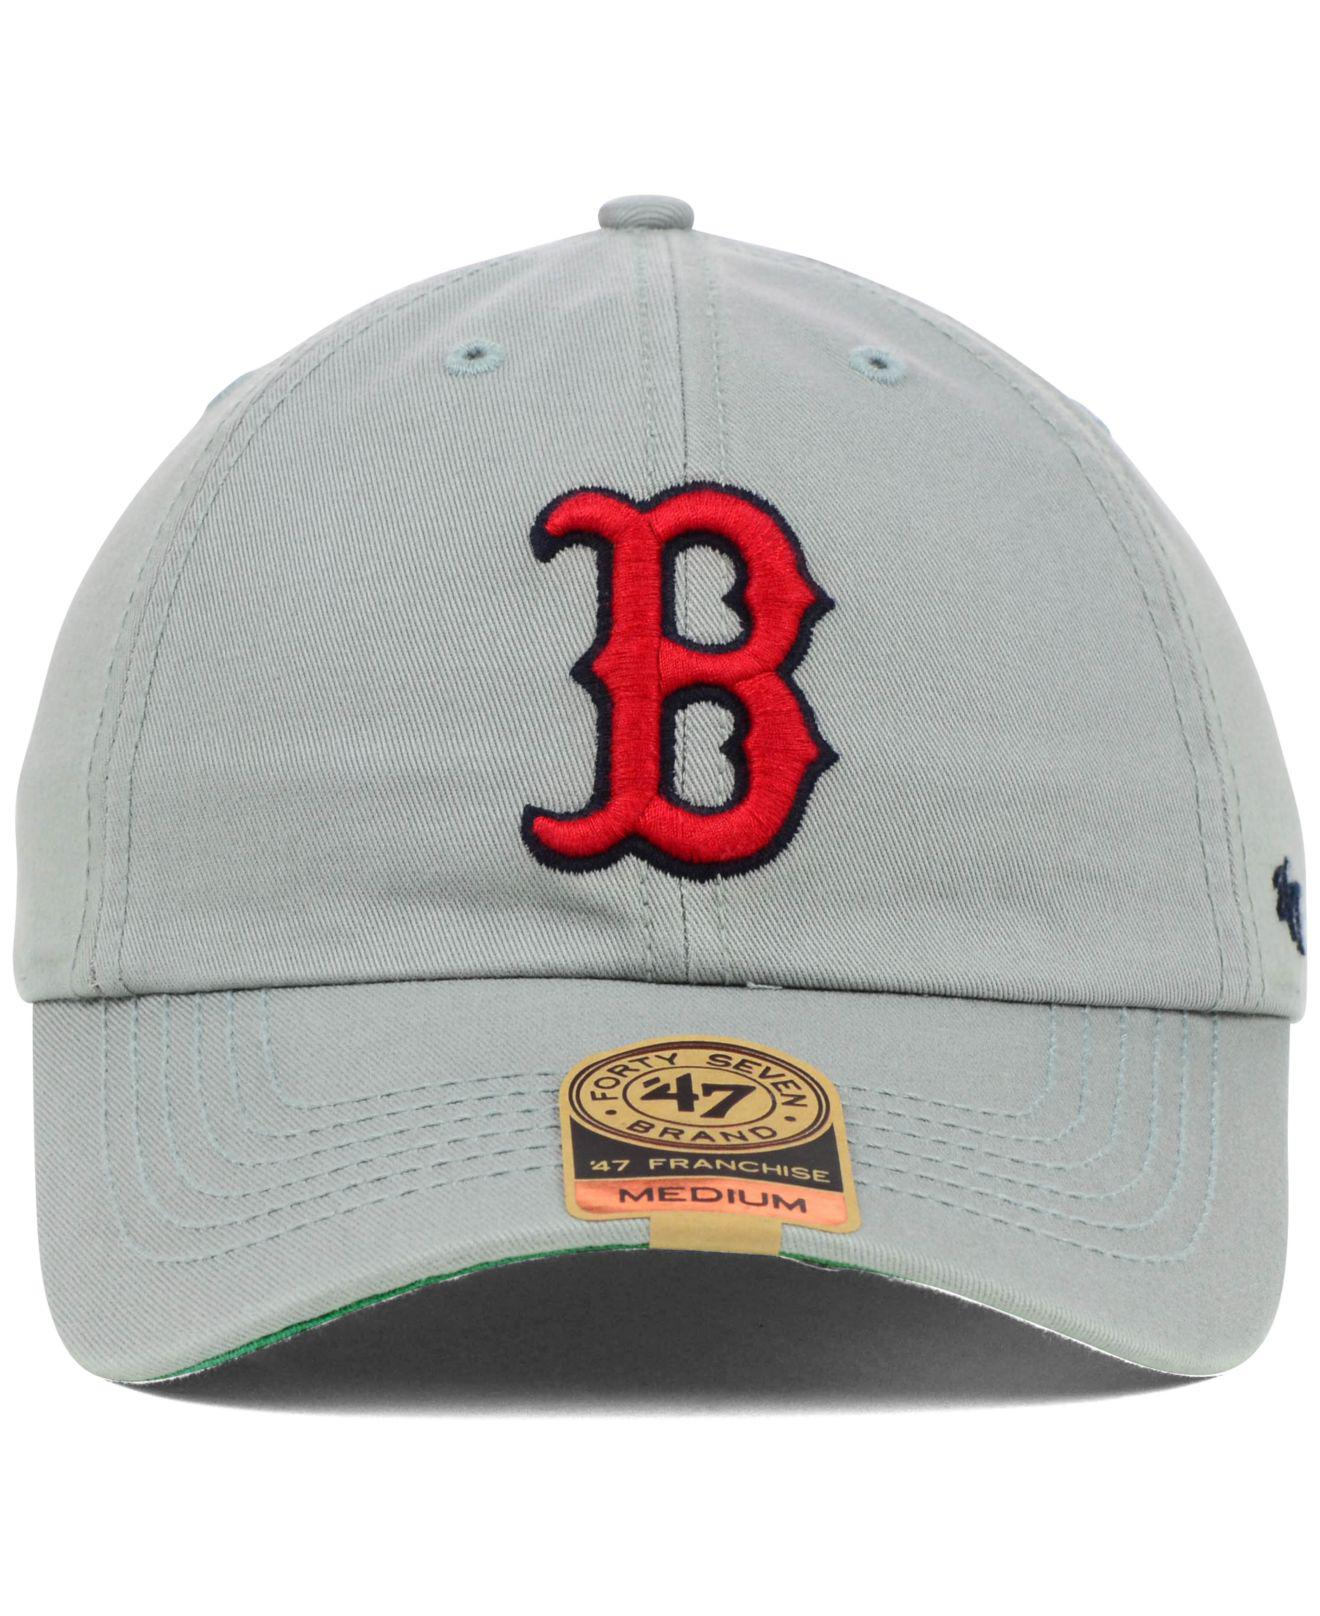 de17d6a767ad6 Lyst - 47 Brand Boston Red Sox Franchise Cap in Gray for Men